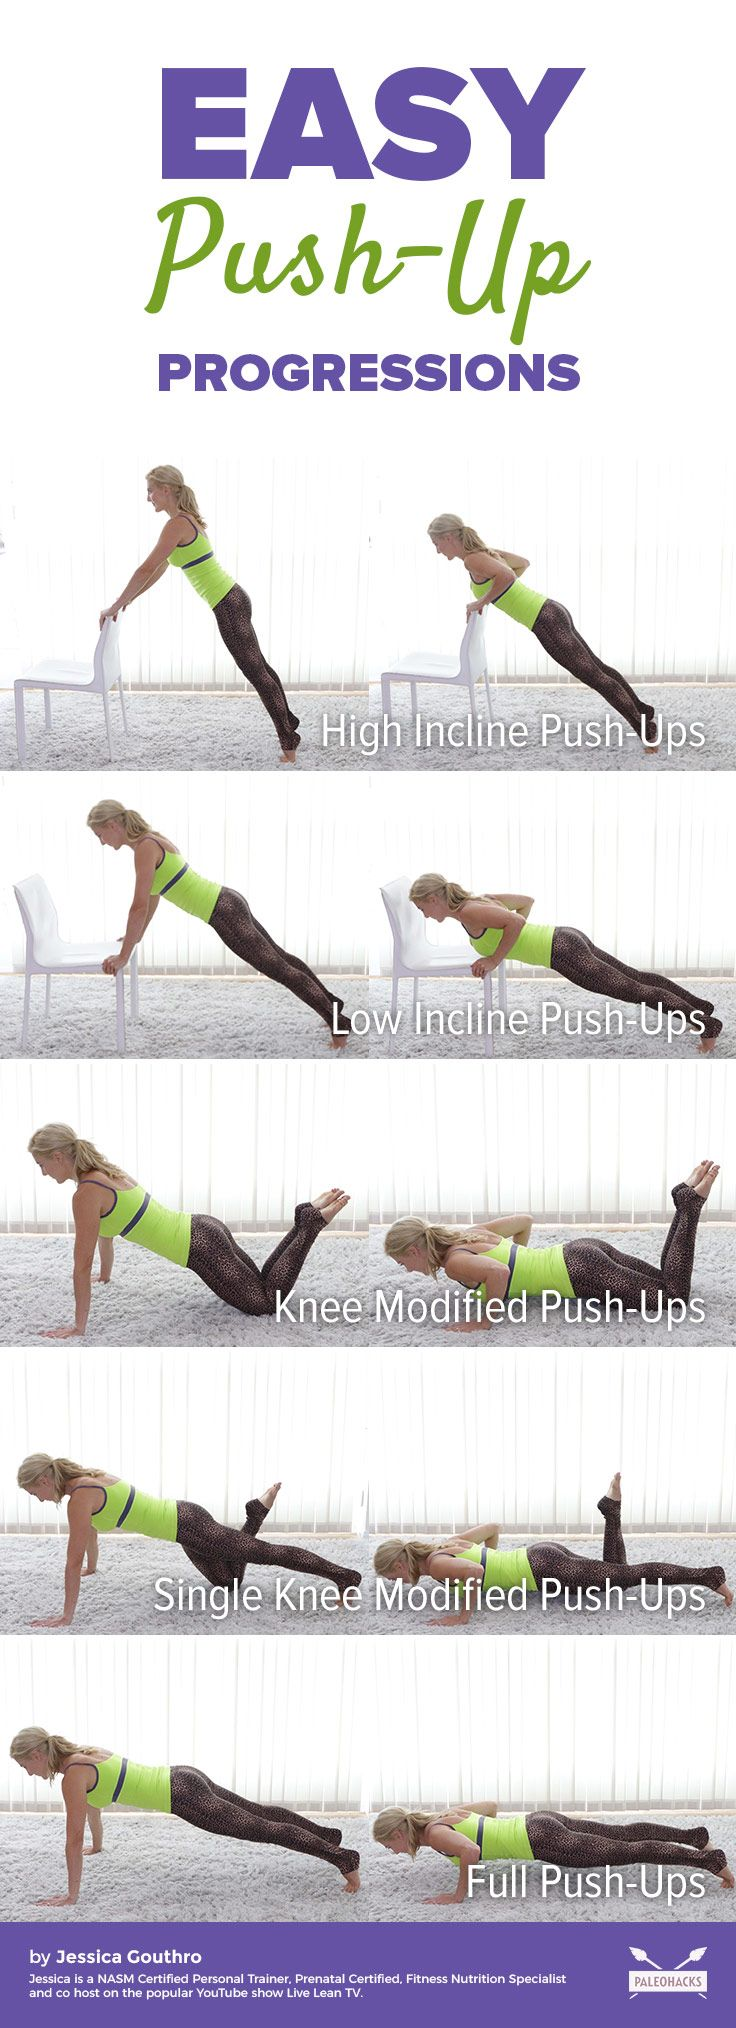 While push-ups are one of the best total-body exercises you can  do, they are also very easy to do incorrectly. If you're new to this  exercise or have a hard time doing them, here are easy push-up  progressions you can do to eventually perform a full push-up. Get the full workout here: http://paleo.co/pushupprogressions